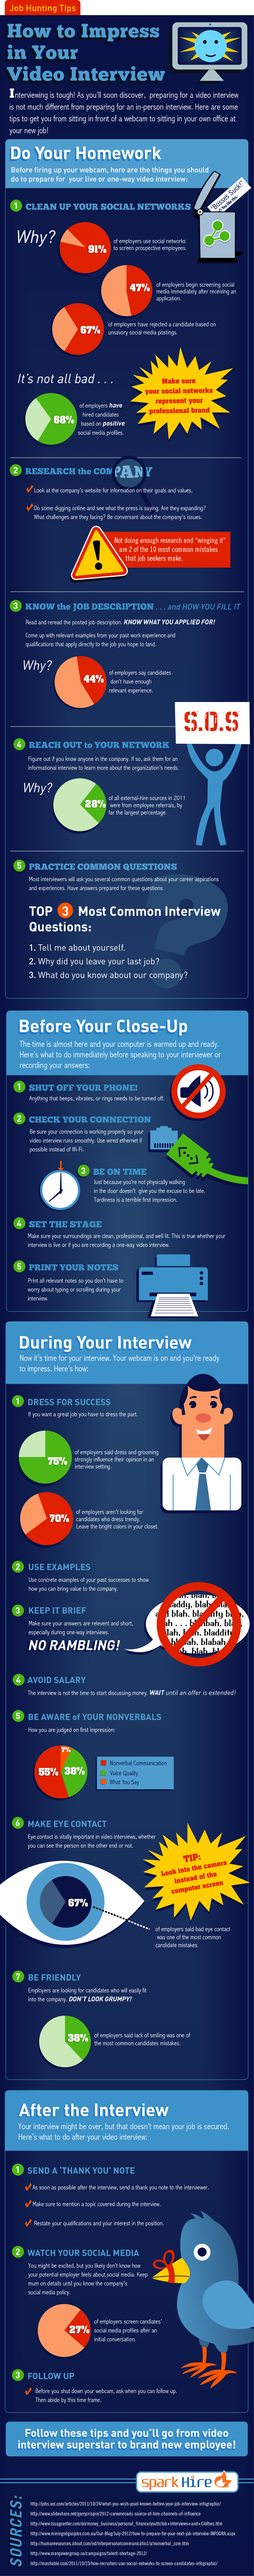 How To Impress Potential Employers In A Video Interview